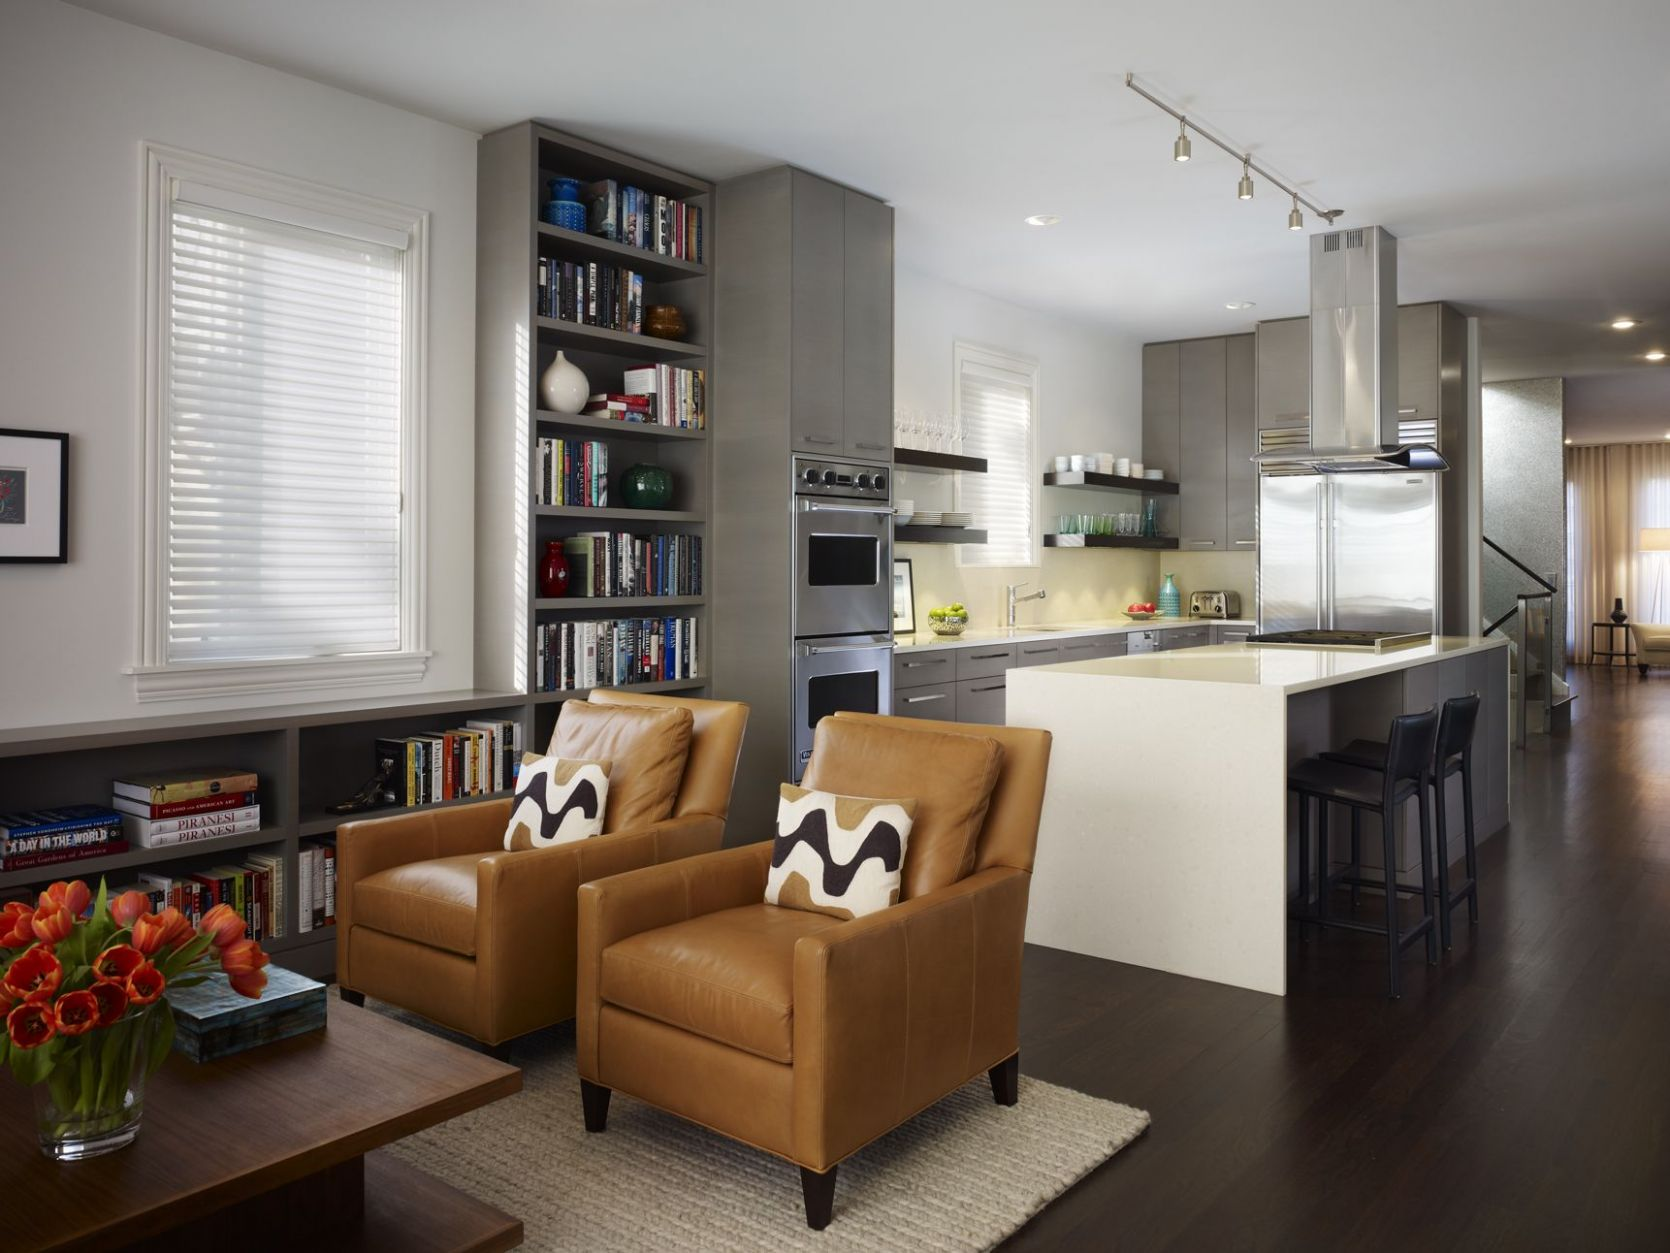 Kitchen Living Room Combo Ideas | Living room and kitchen design ...